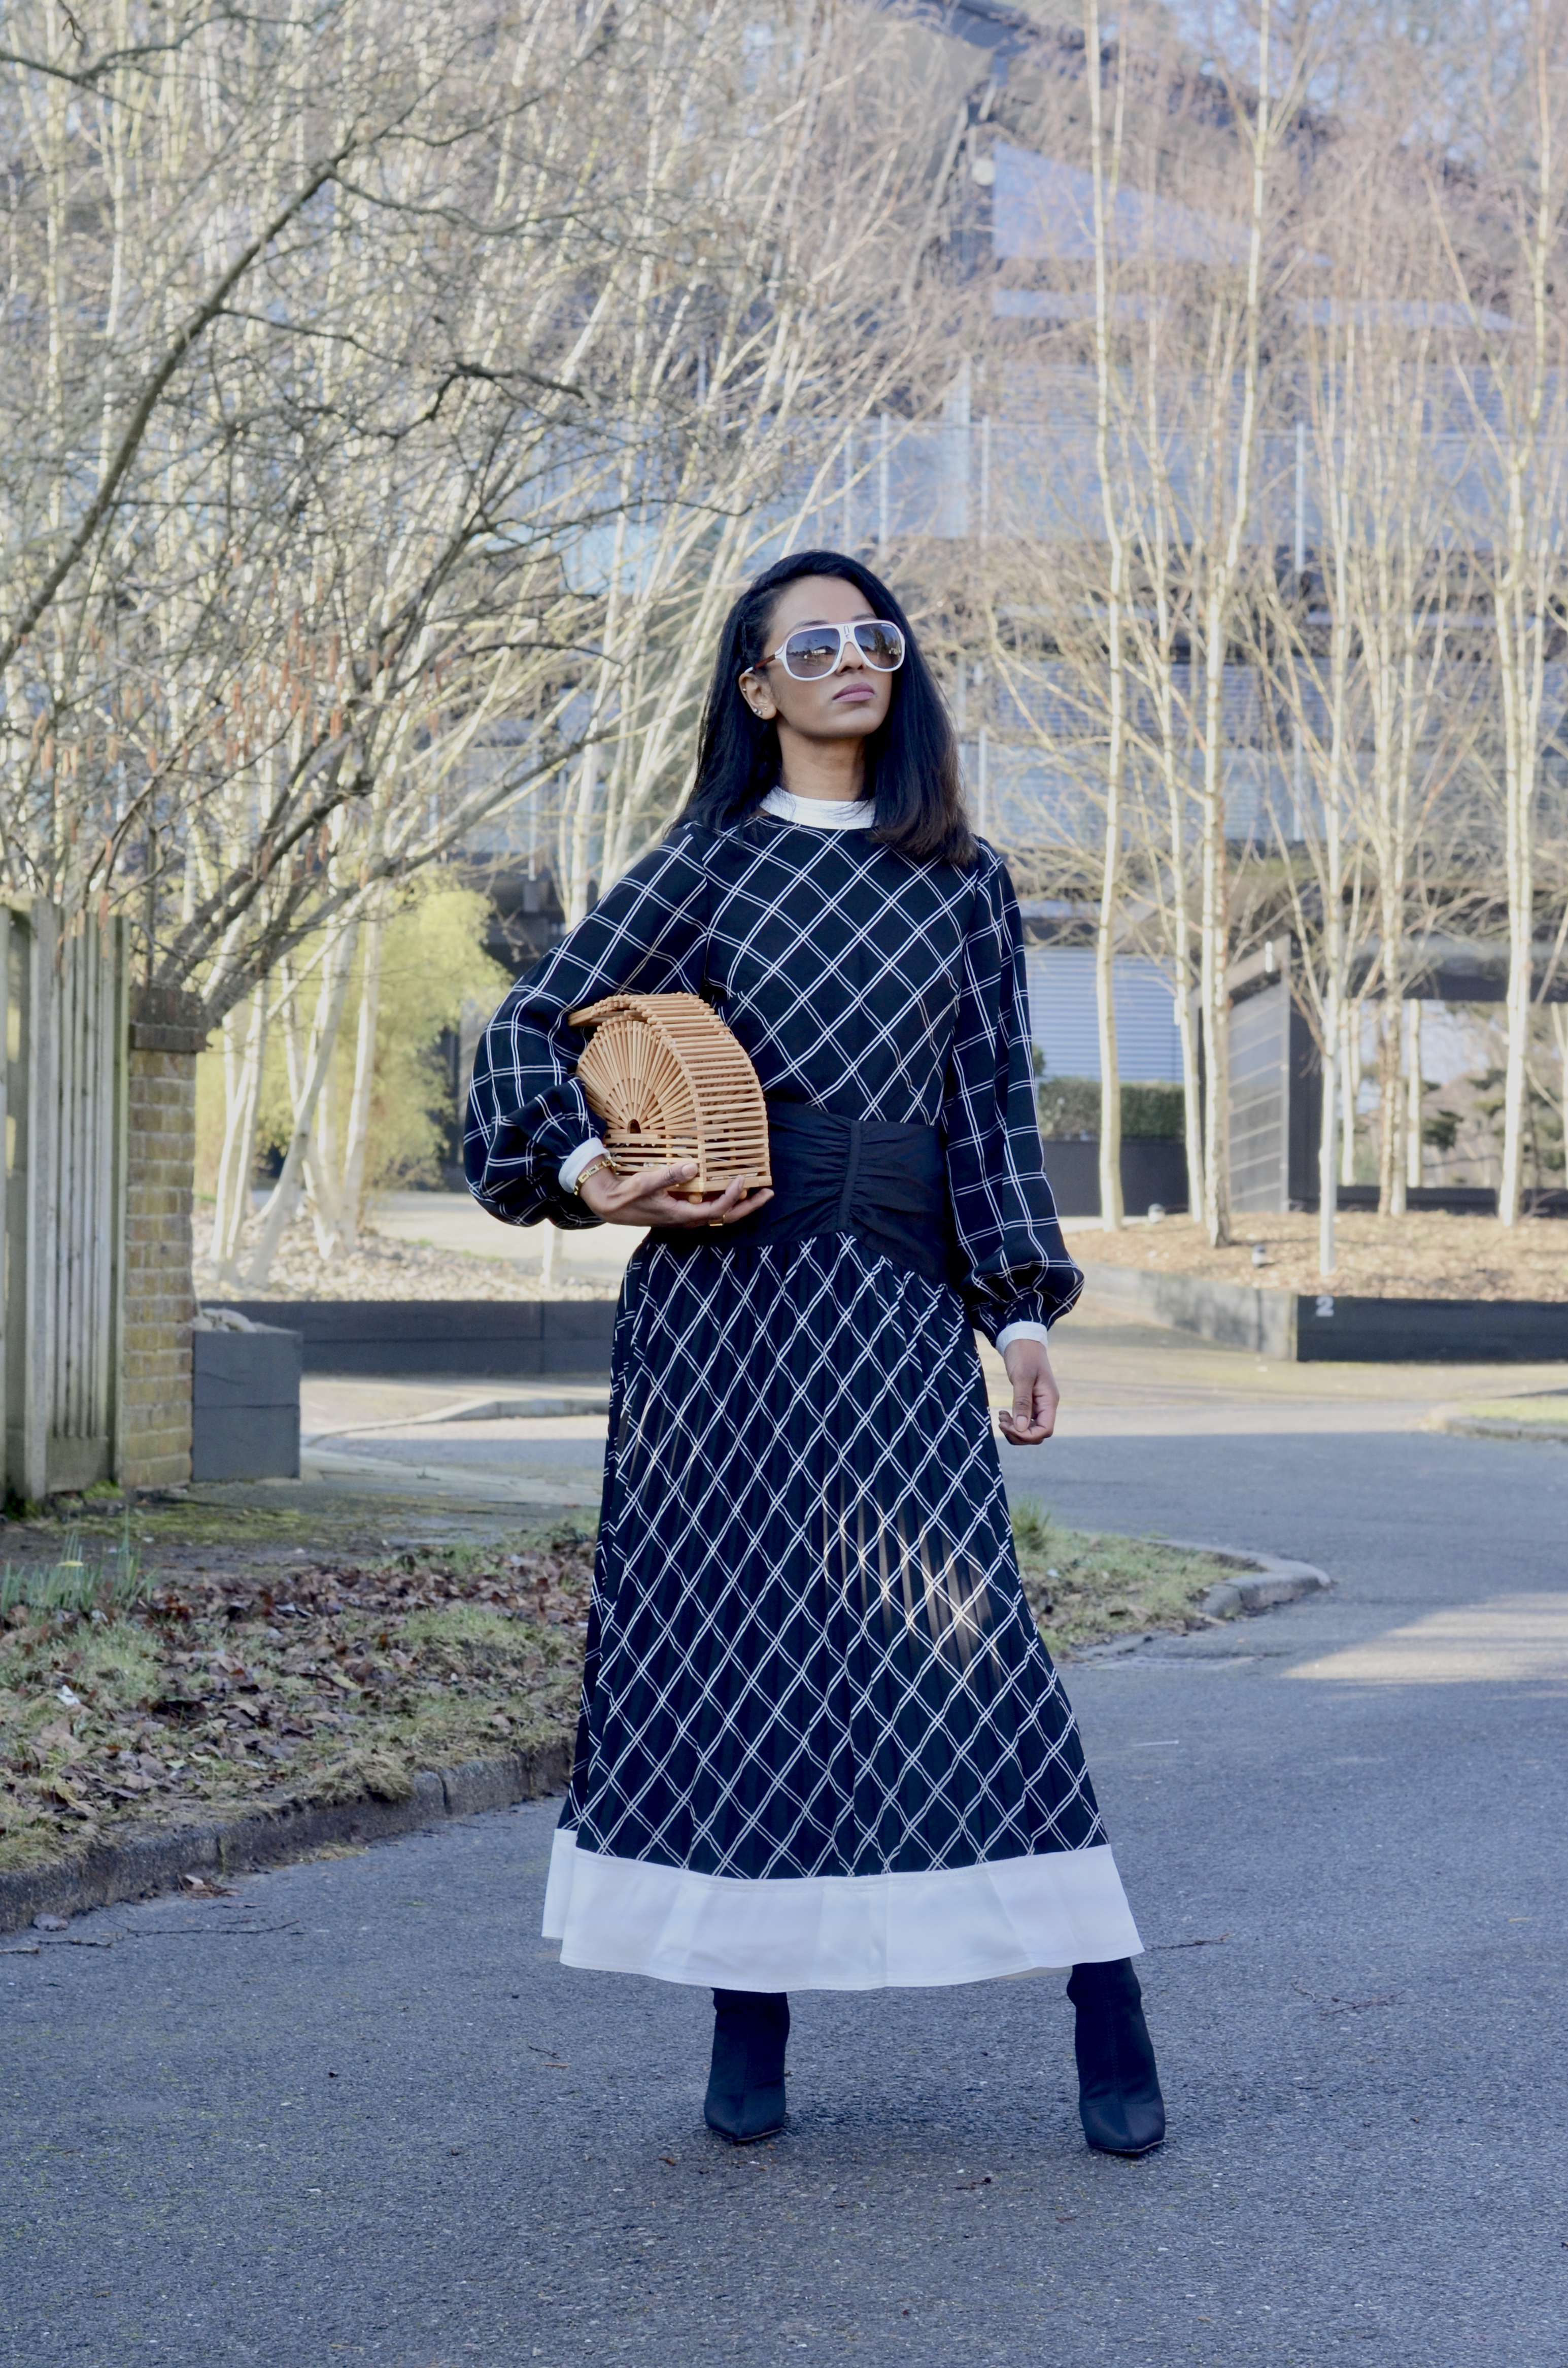 SPRING READY IN A SELF-PORTRAIT DRESS